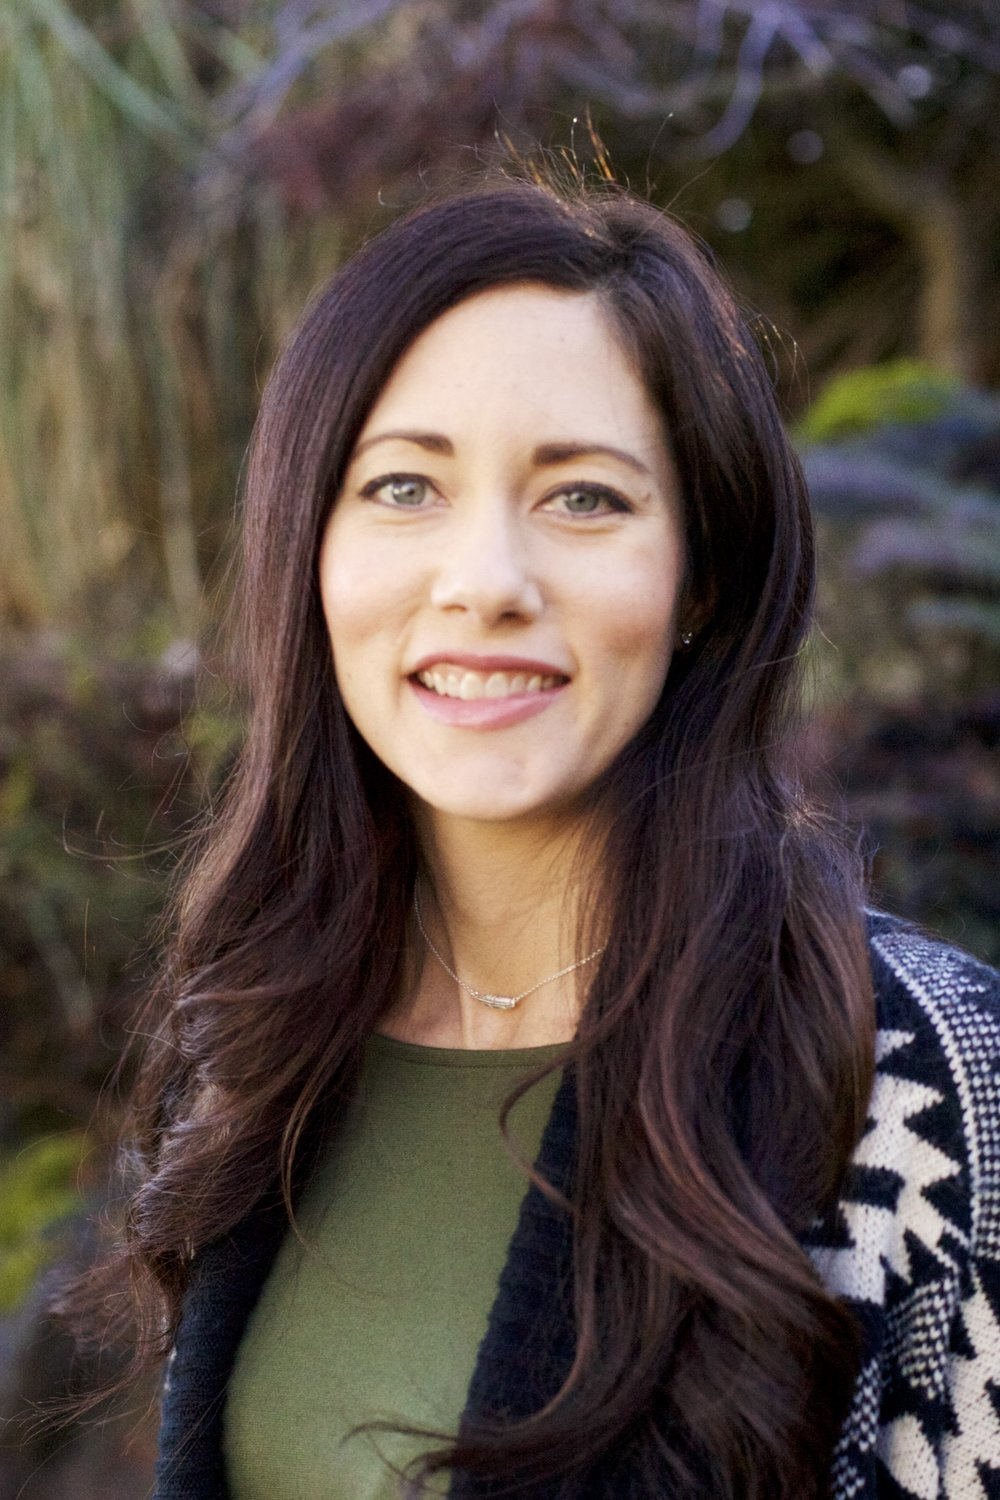 Kelly Hughes Berardi, PhD, Licensed Psychologist ∙ Adolescents & Adults (15-65) ∙ Trauma - emotional abuse, sexual trauma, domestic violence ∙ Military- Active Duty and Veterans Issues ∙ PTSD ∙ Anxiety ∙ Depression ∙ Stress ∙ Eating Disorders ∙ Body Image ∙ Life Transitions ∙ Spirituality ∙ Mindfulness ∙ Meditation